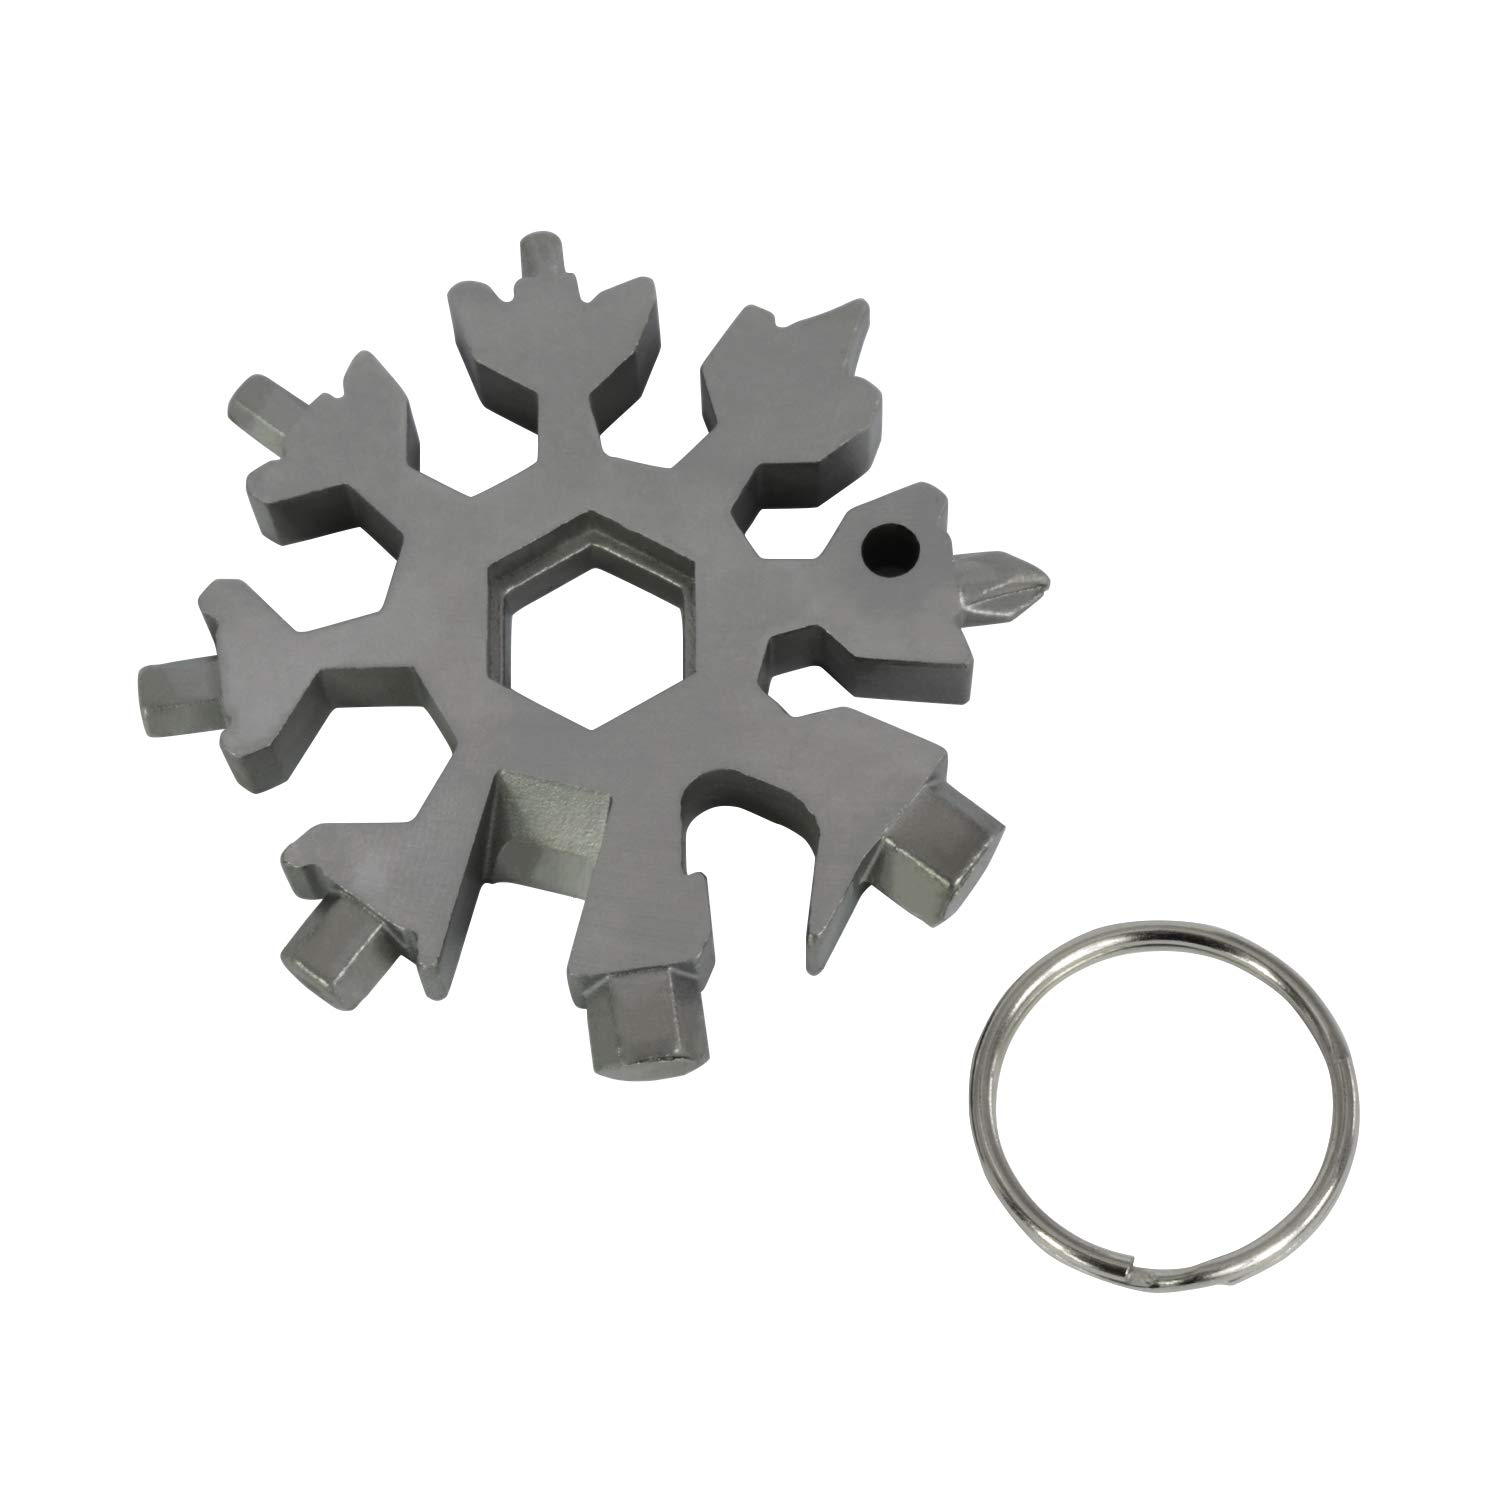 ROSE KULI Snowflakes Multitools - 18 in 1 Multi Tools Portable Wrench Screwdriver Pocket Multi-Tools for Open Key, Silver by ROSE KULI (Image #1)